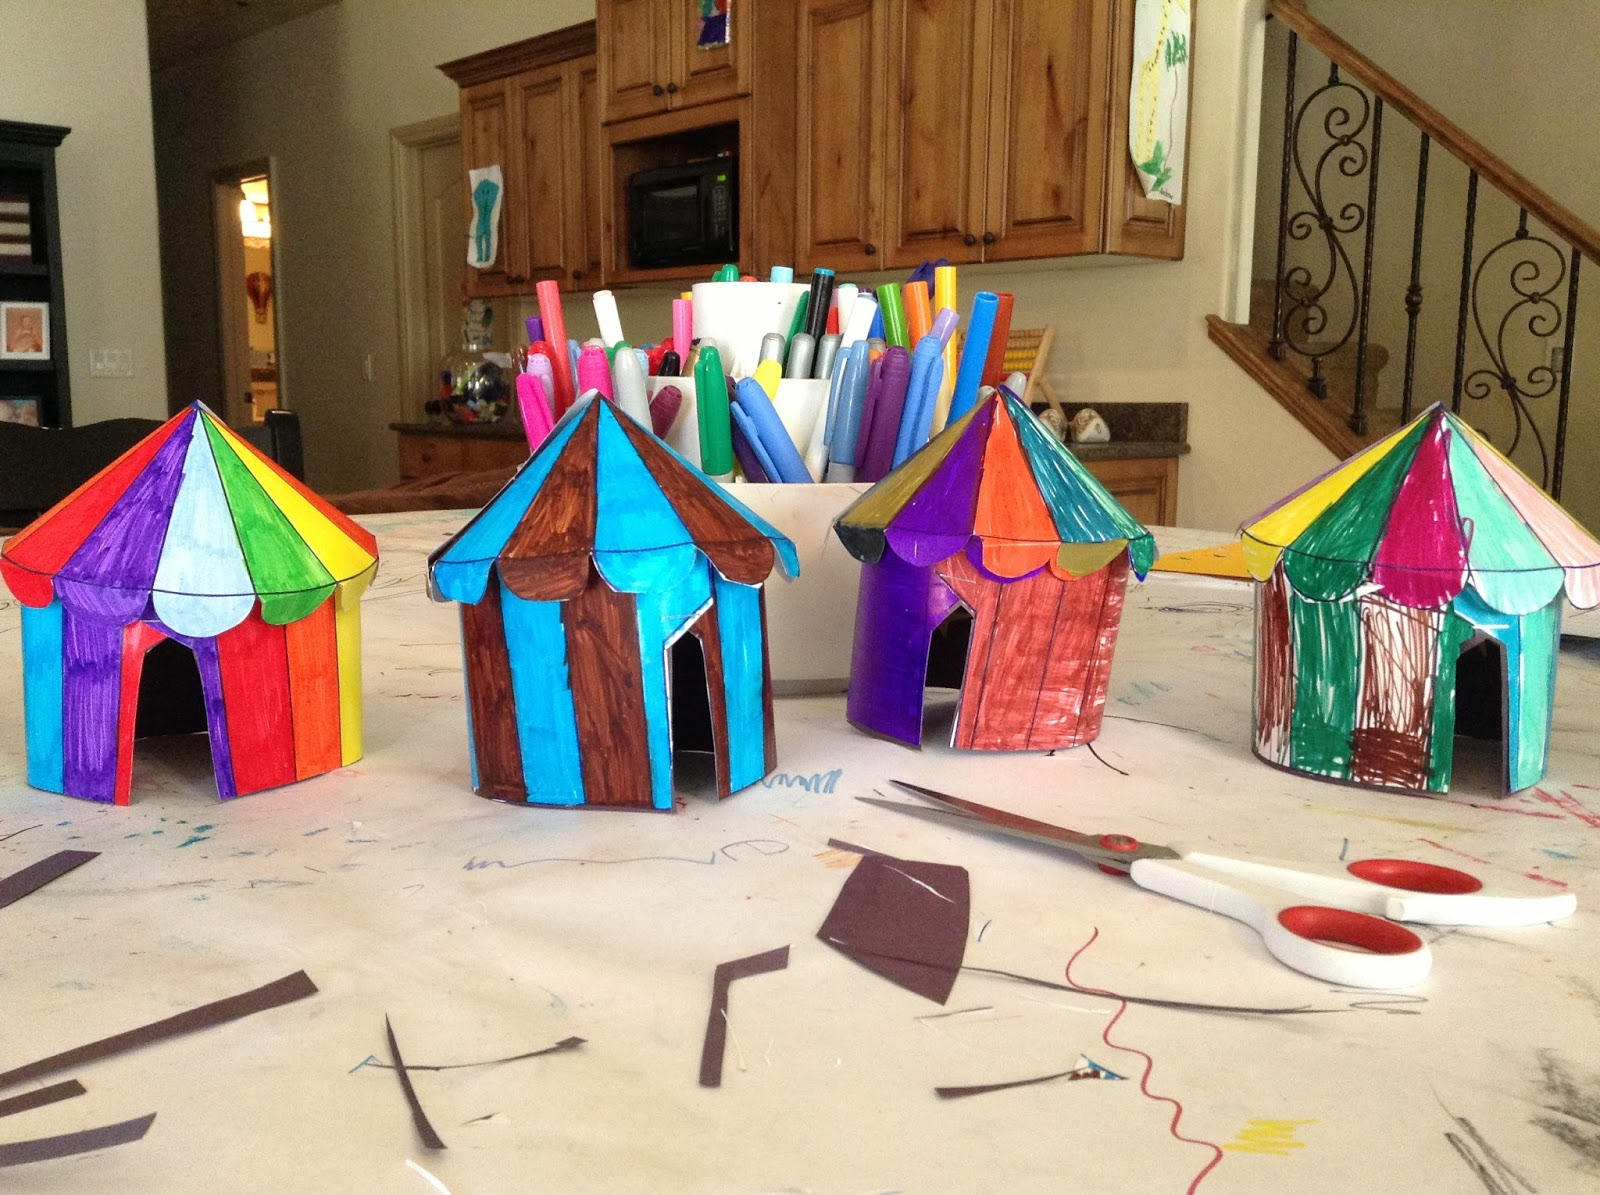 On the last day of Art C& we got crafty and we made 3D Circus tents. They turned out so cute. I was so impressed by the little artists. & Rachelu0027s Art School for Kids: cIrCuS tEnTs